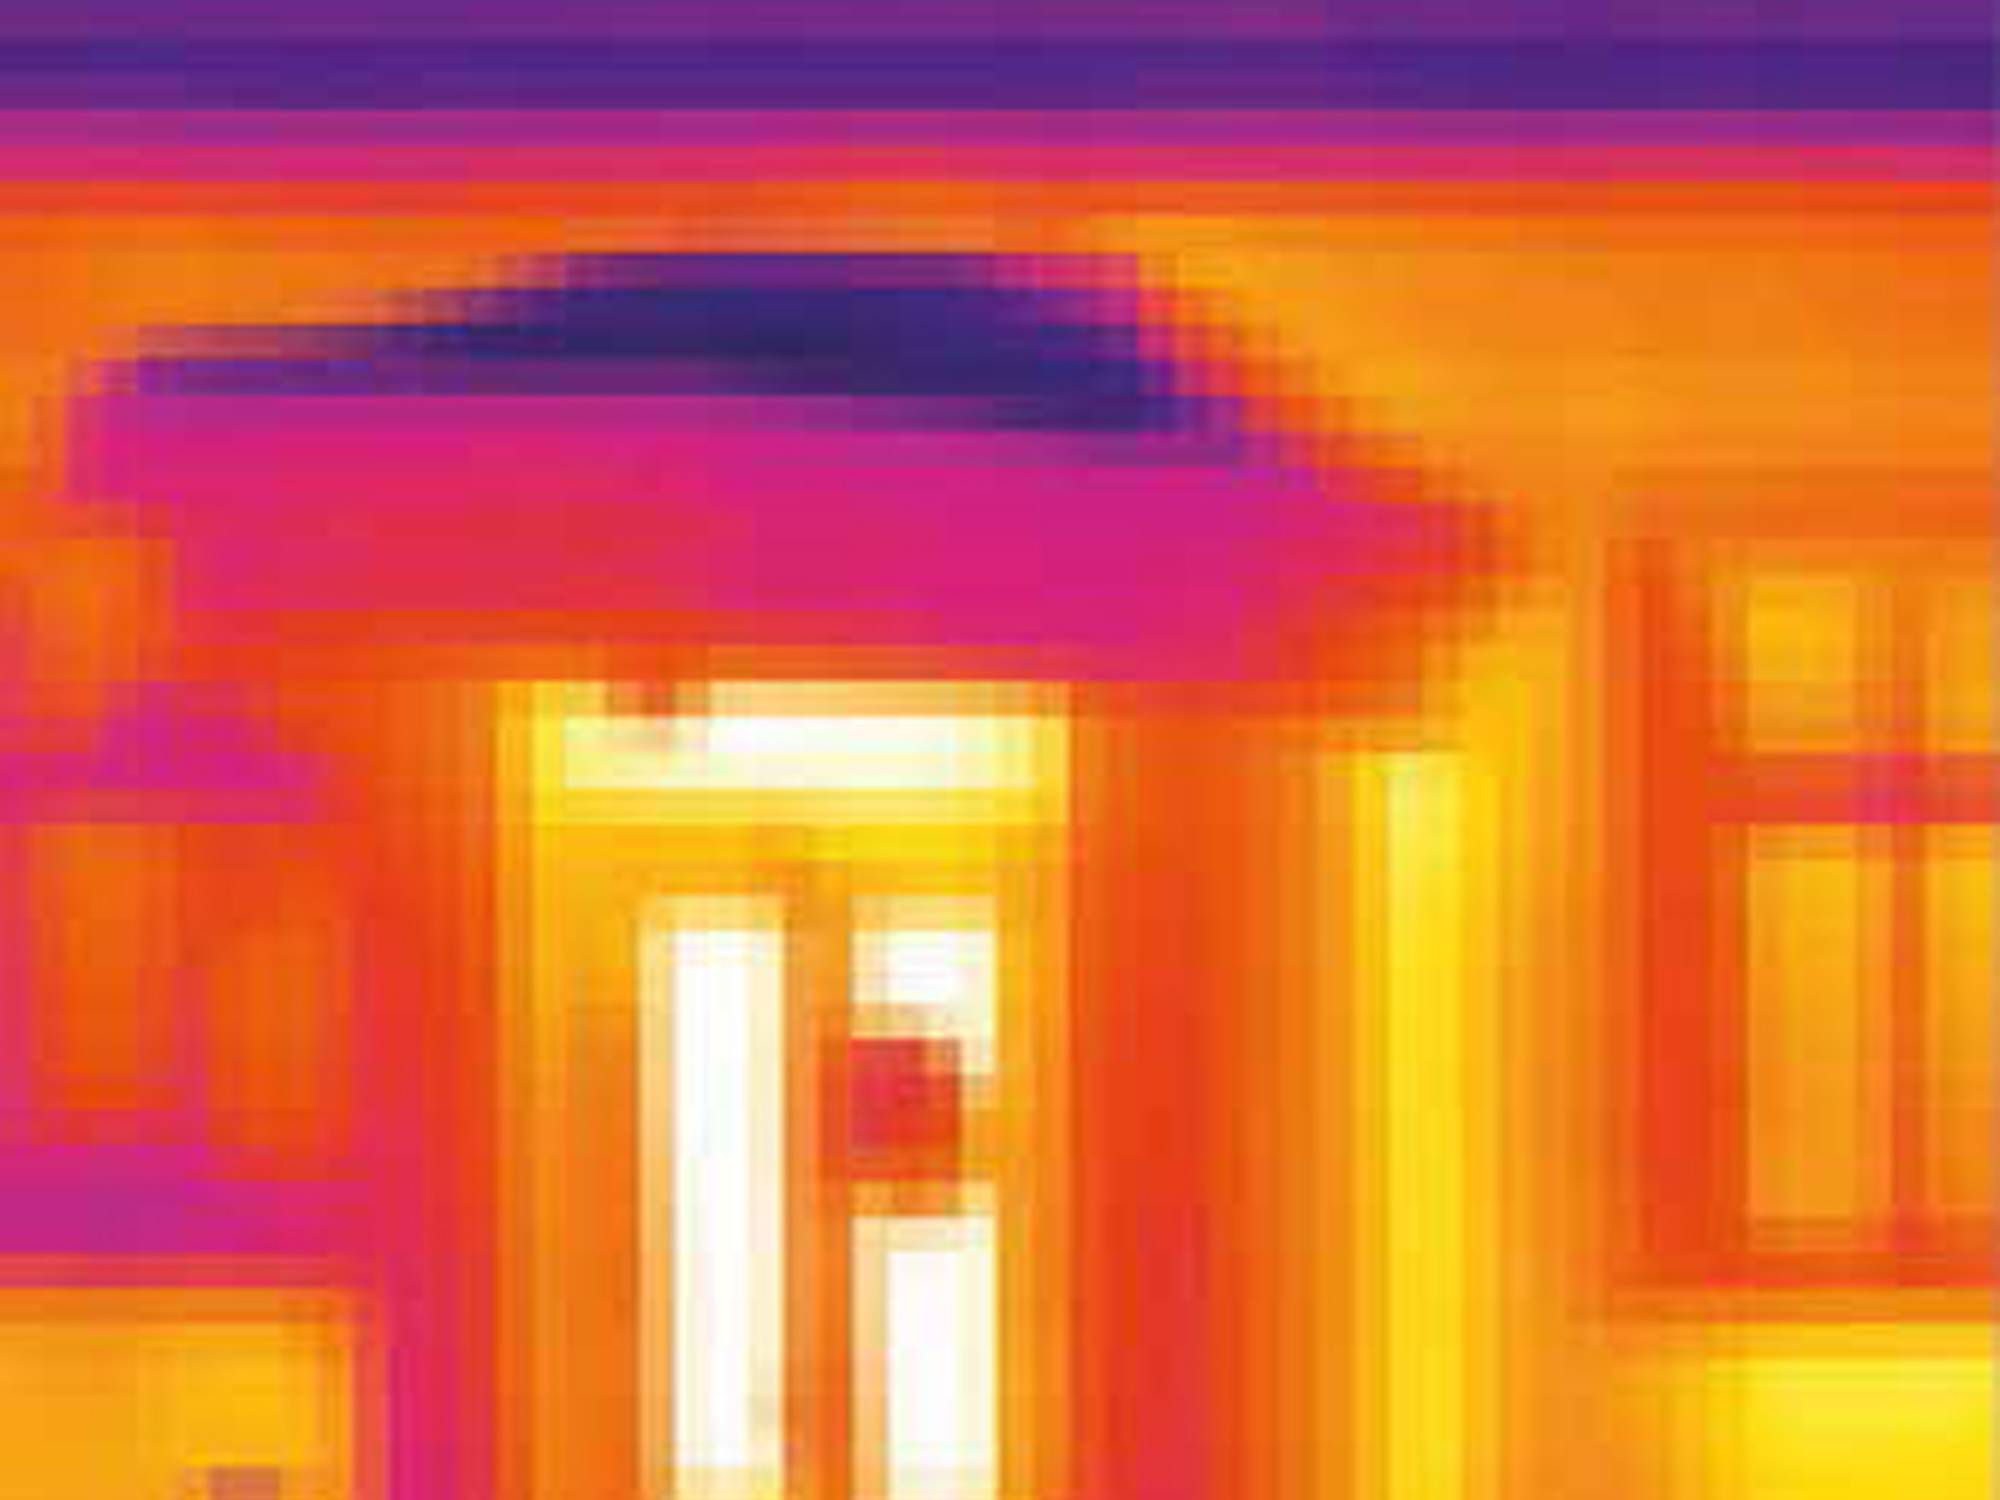 thermography-building-v1-2000x1500.jpg